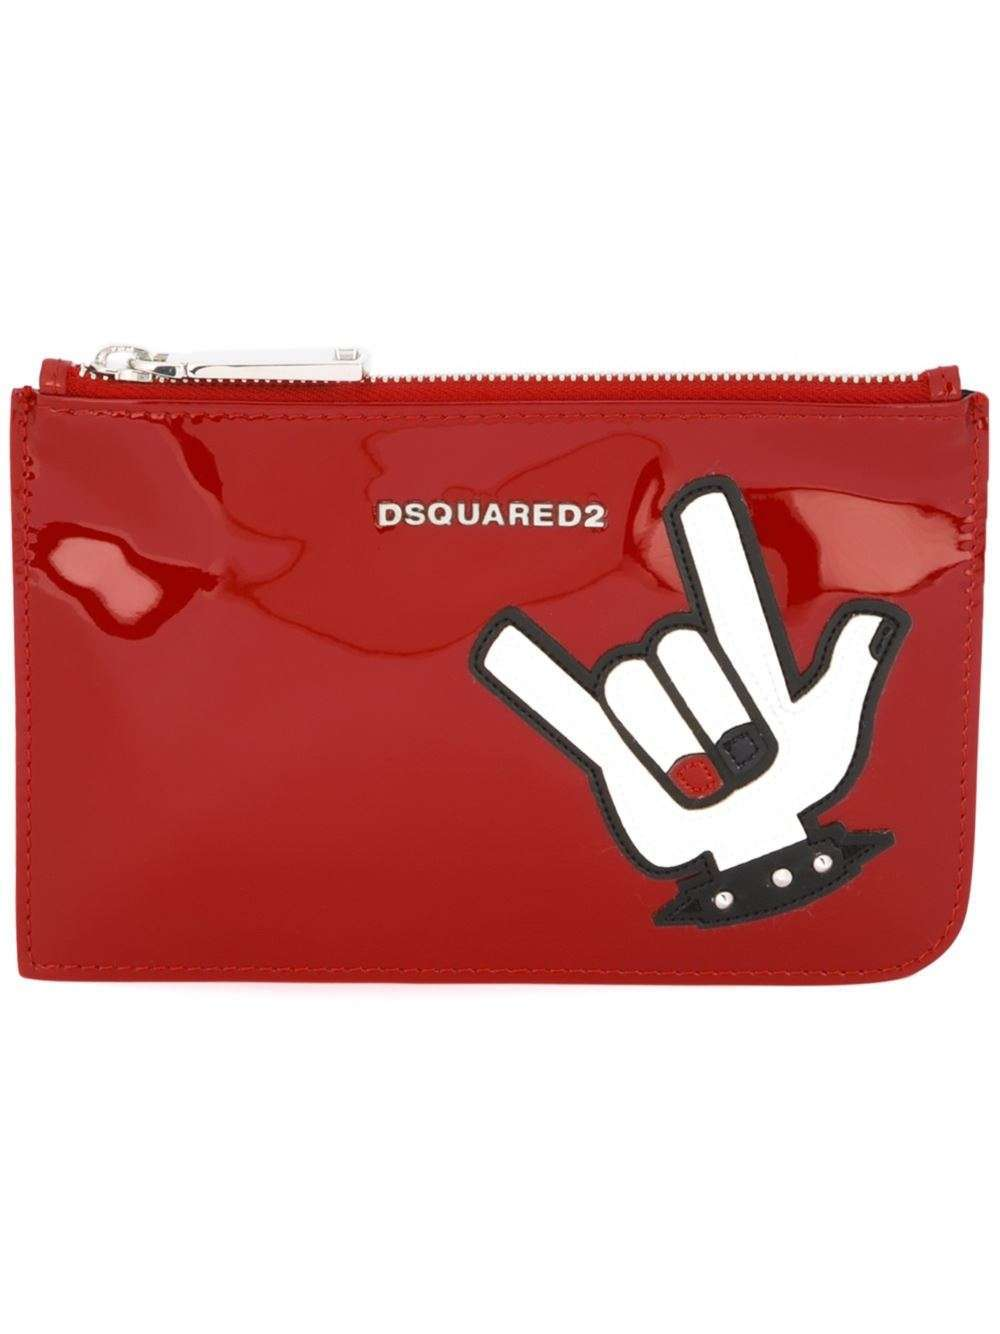 Beauty case vernice DSquared2